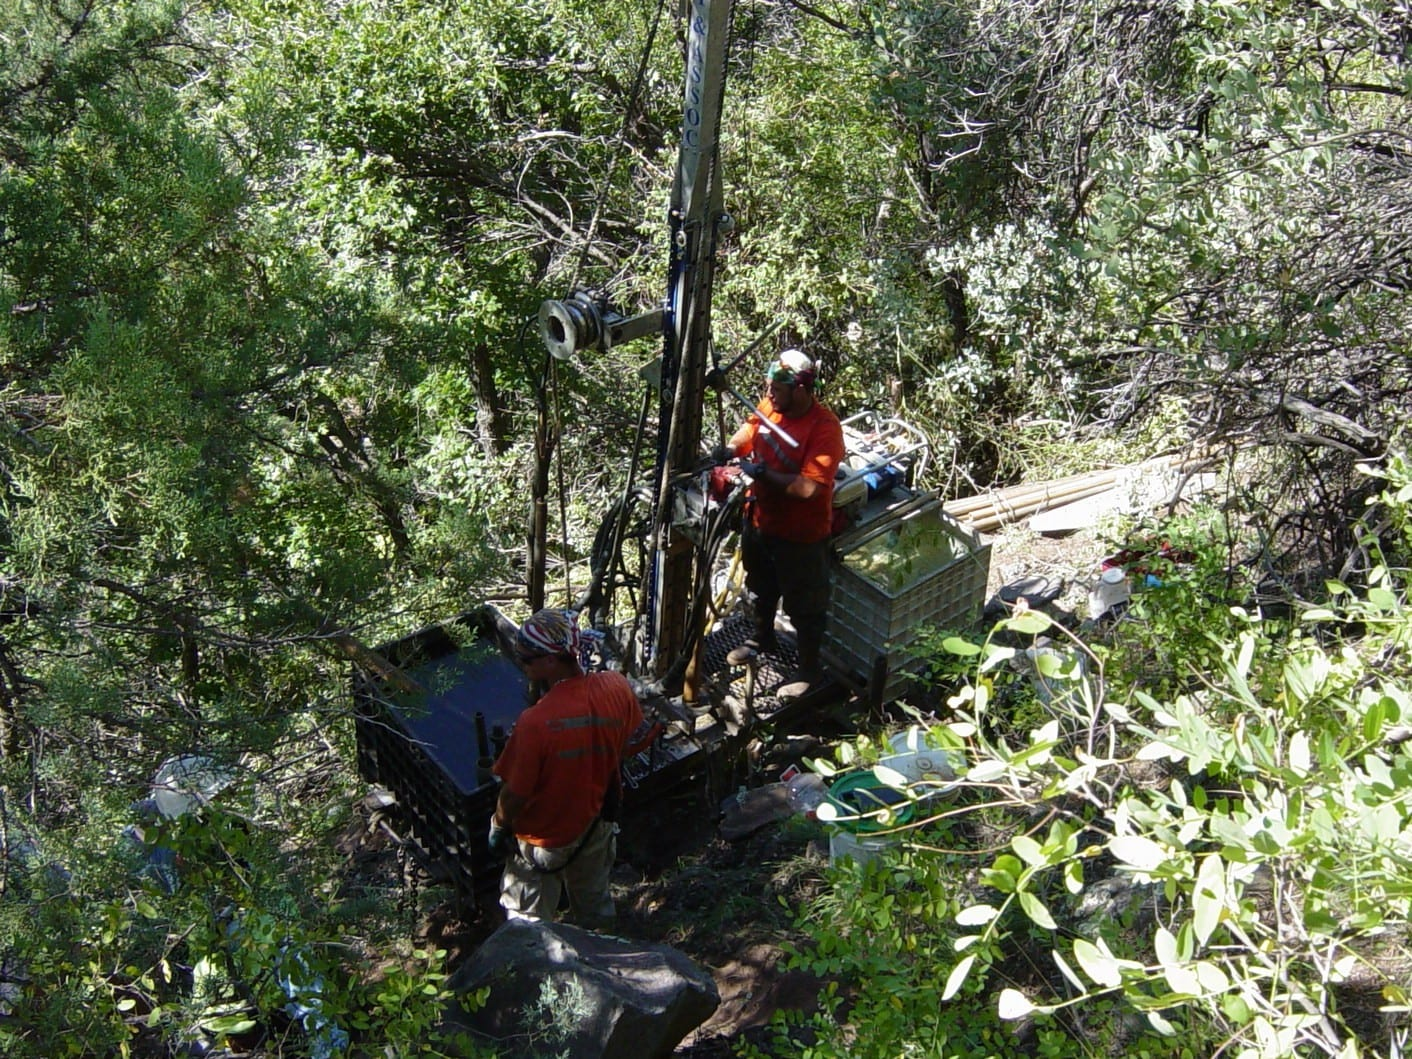 Small footprint drill rig located on a steep heavily wooded slope